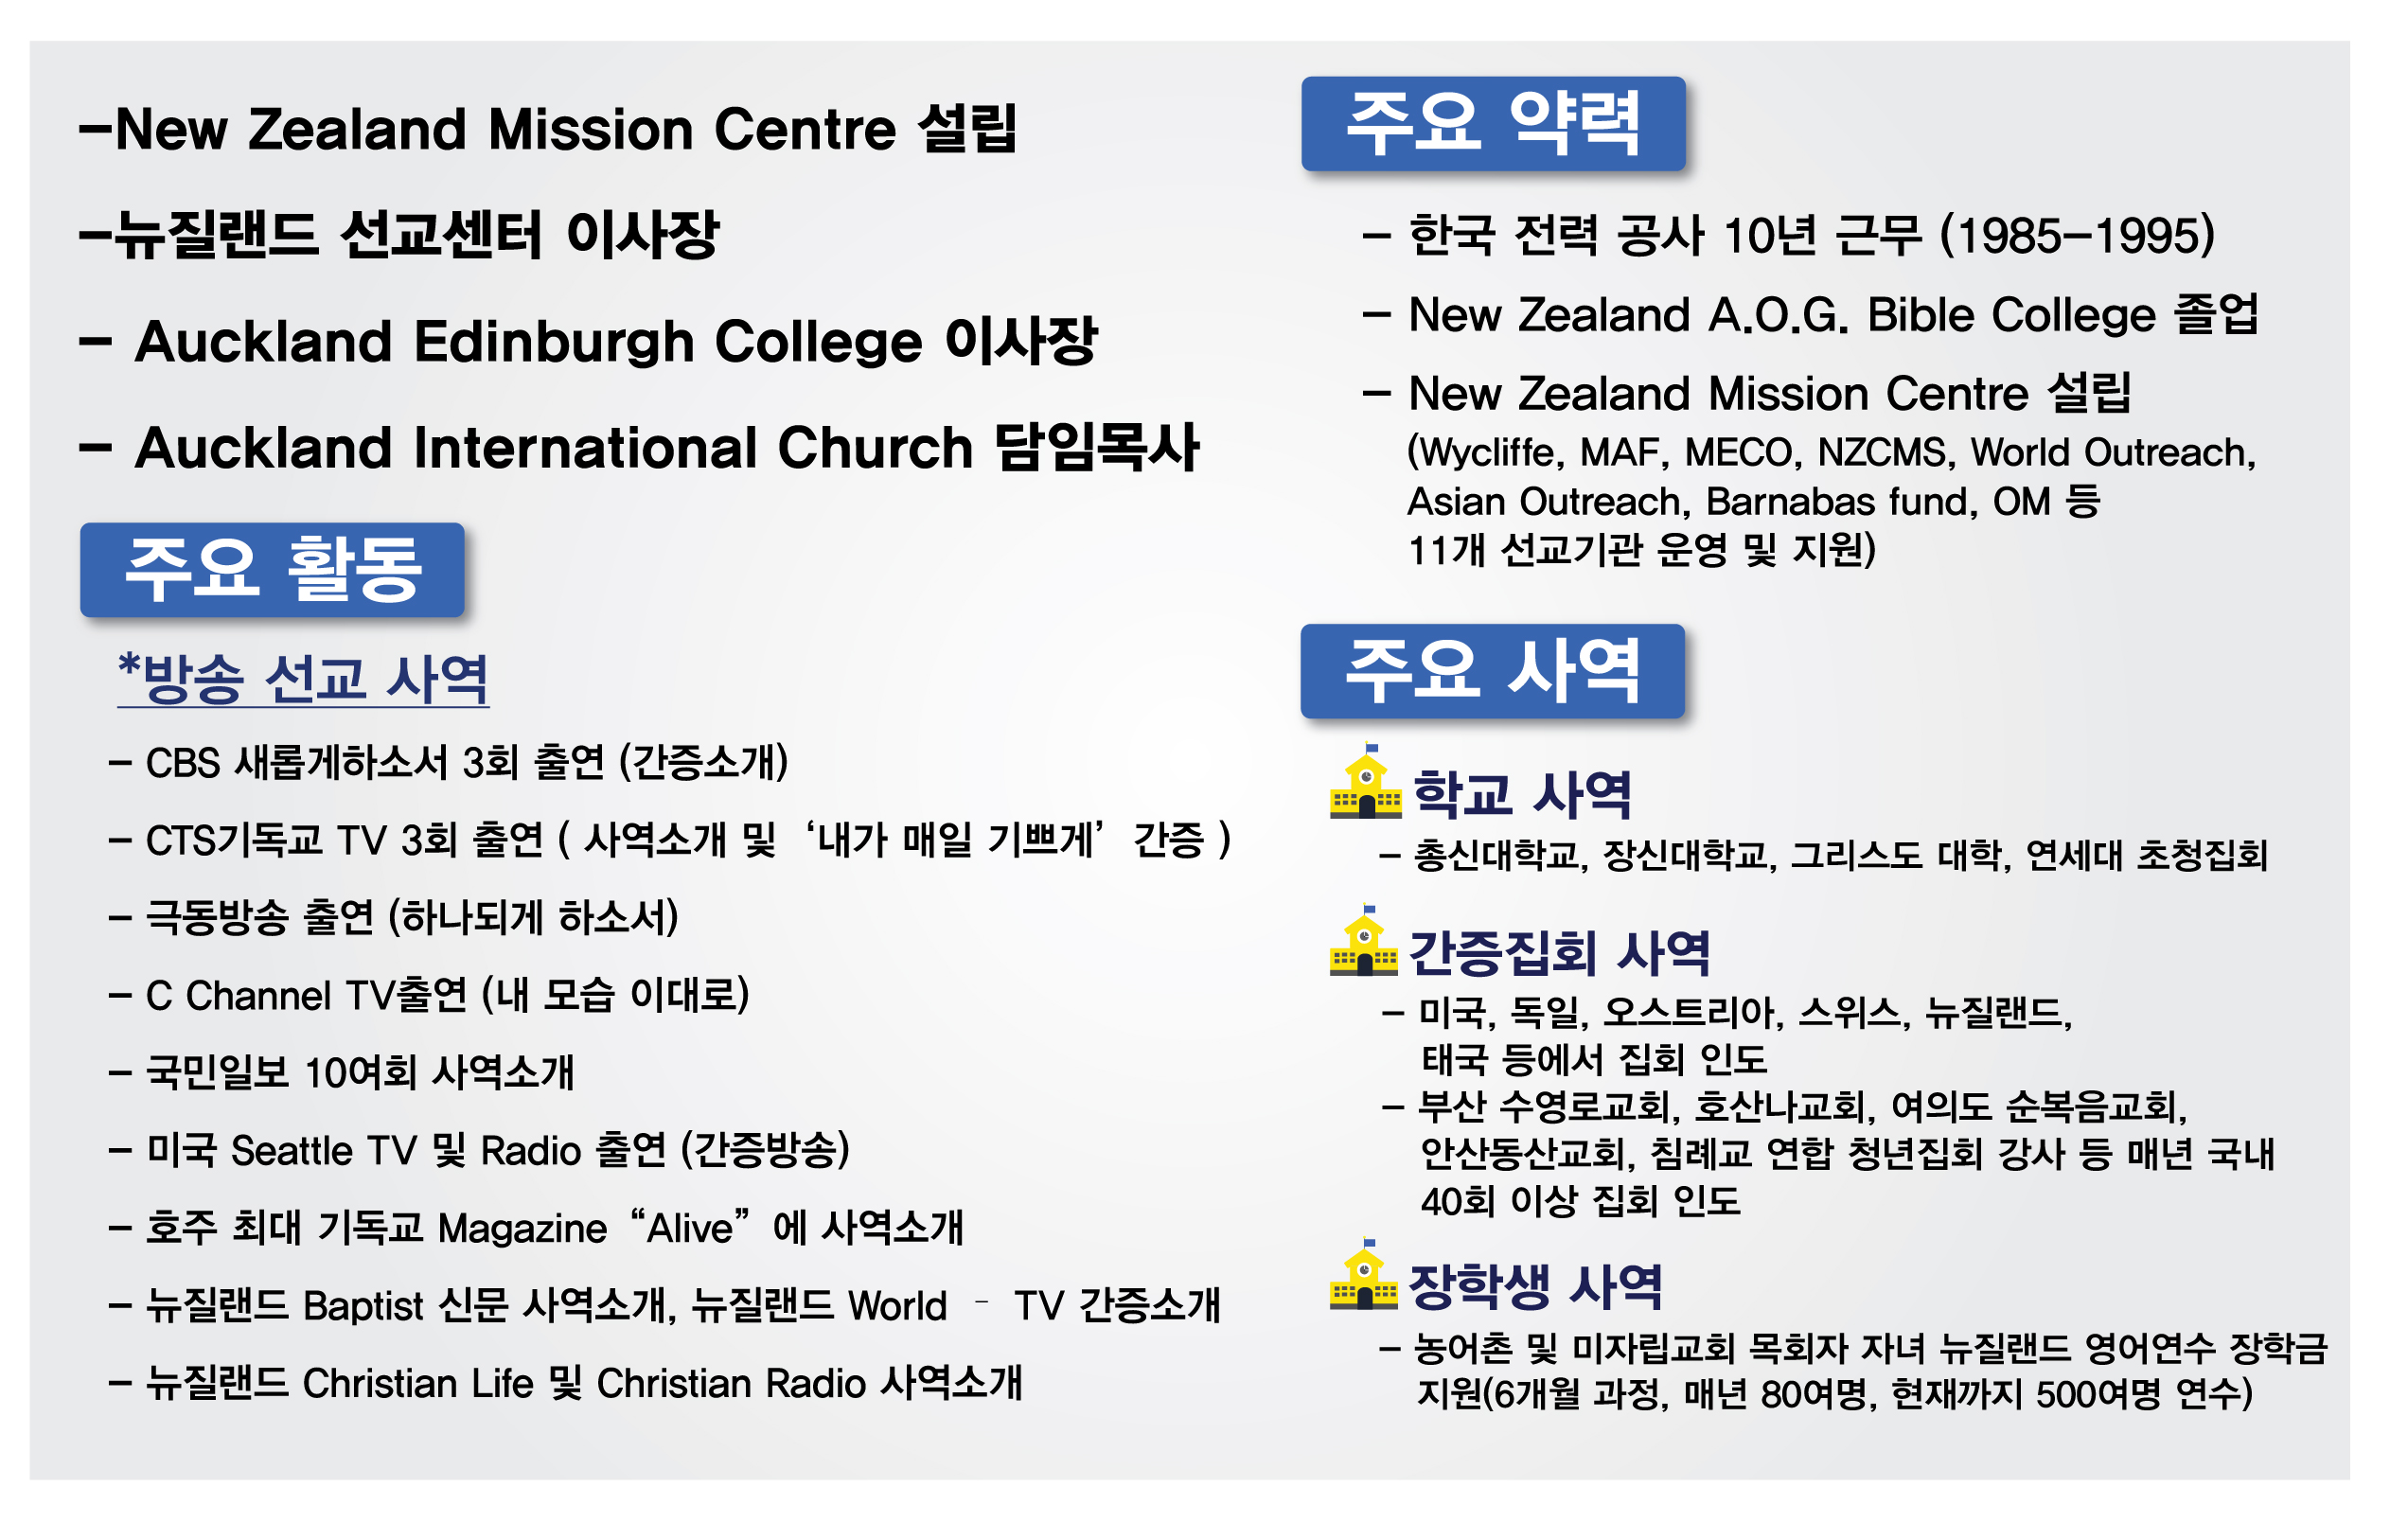 Auckland International Church 이은태 목사